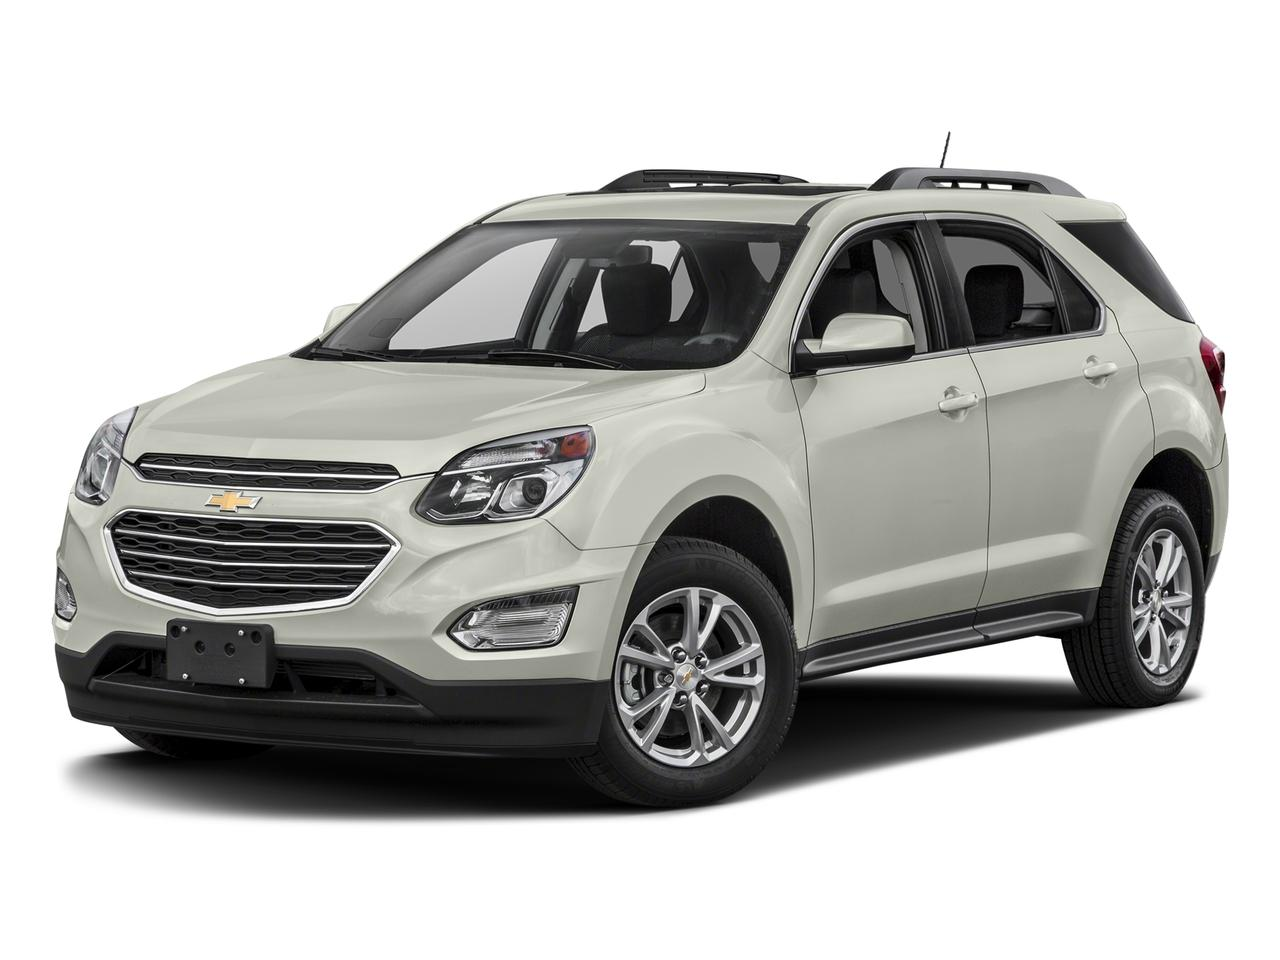 2017 Chevrolet Equinox Vehicle Photo in Anchorage, AK 99515